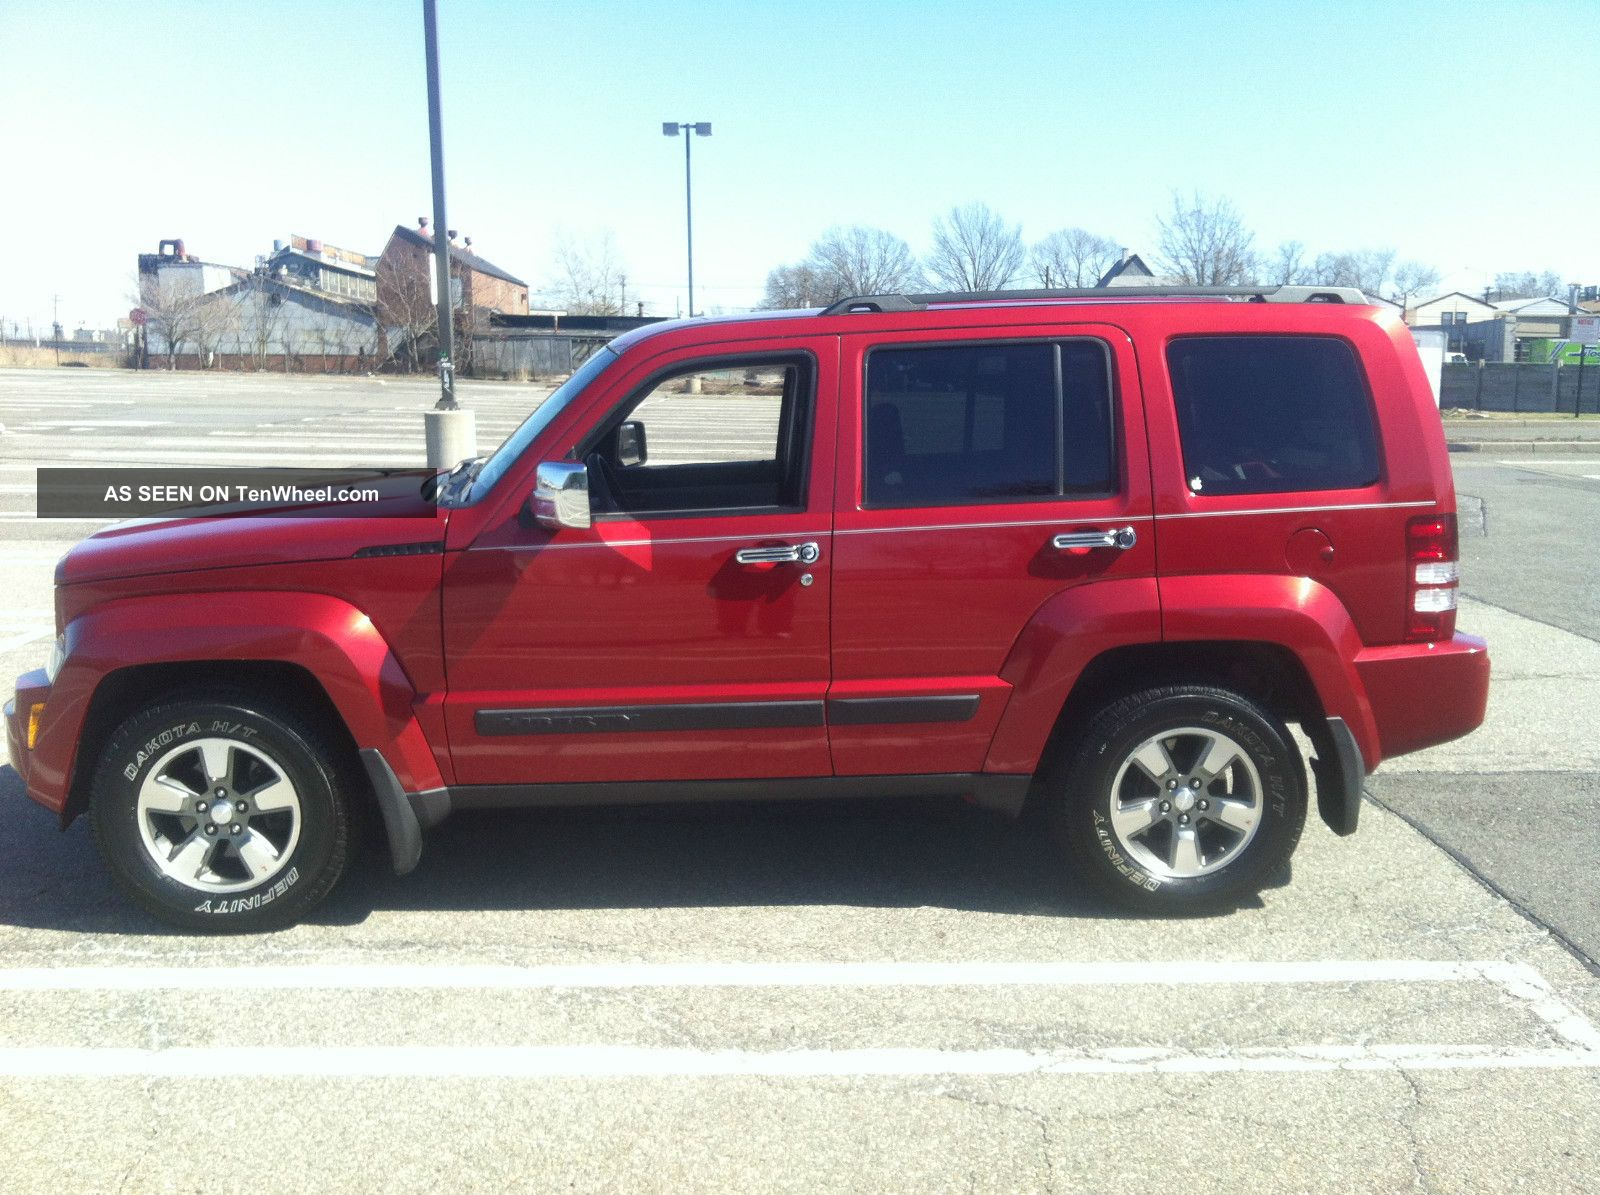 2008 Jeep Liberty photo - 3